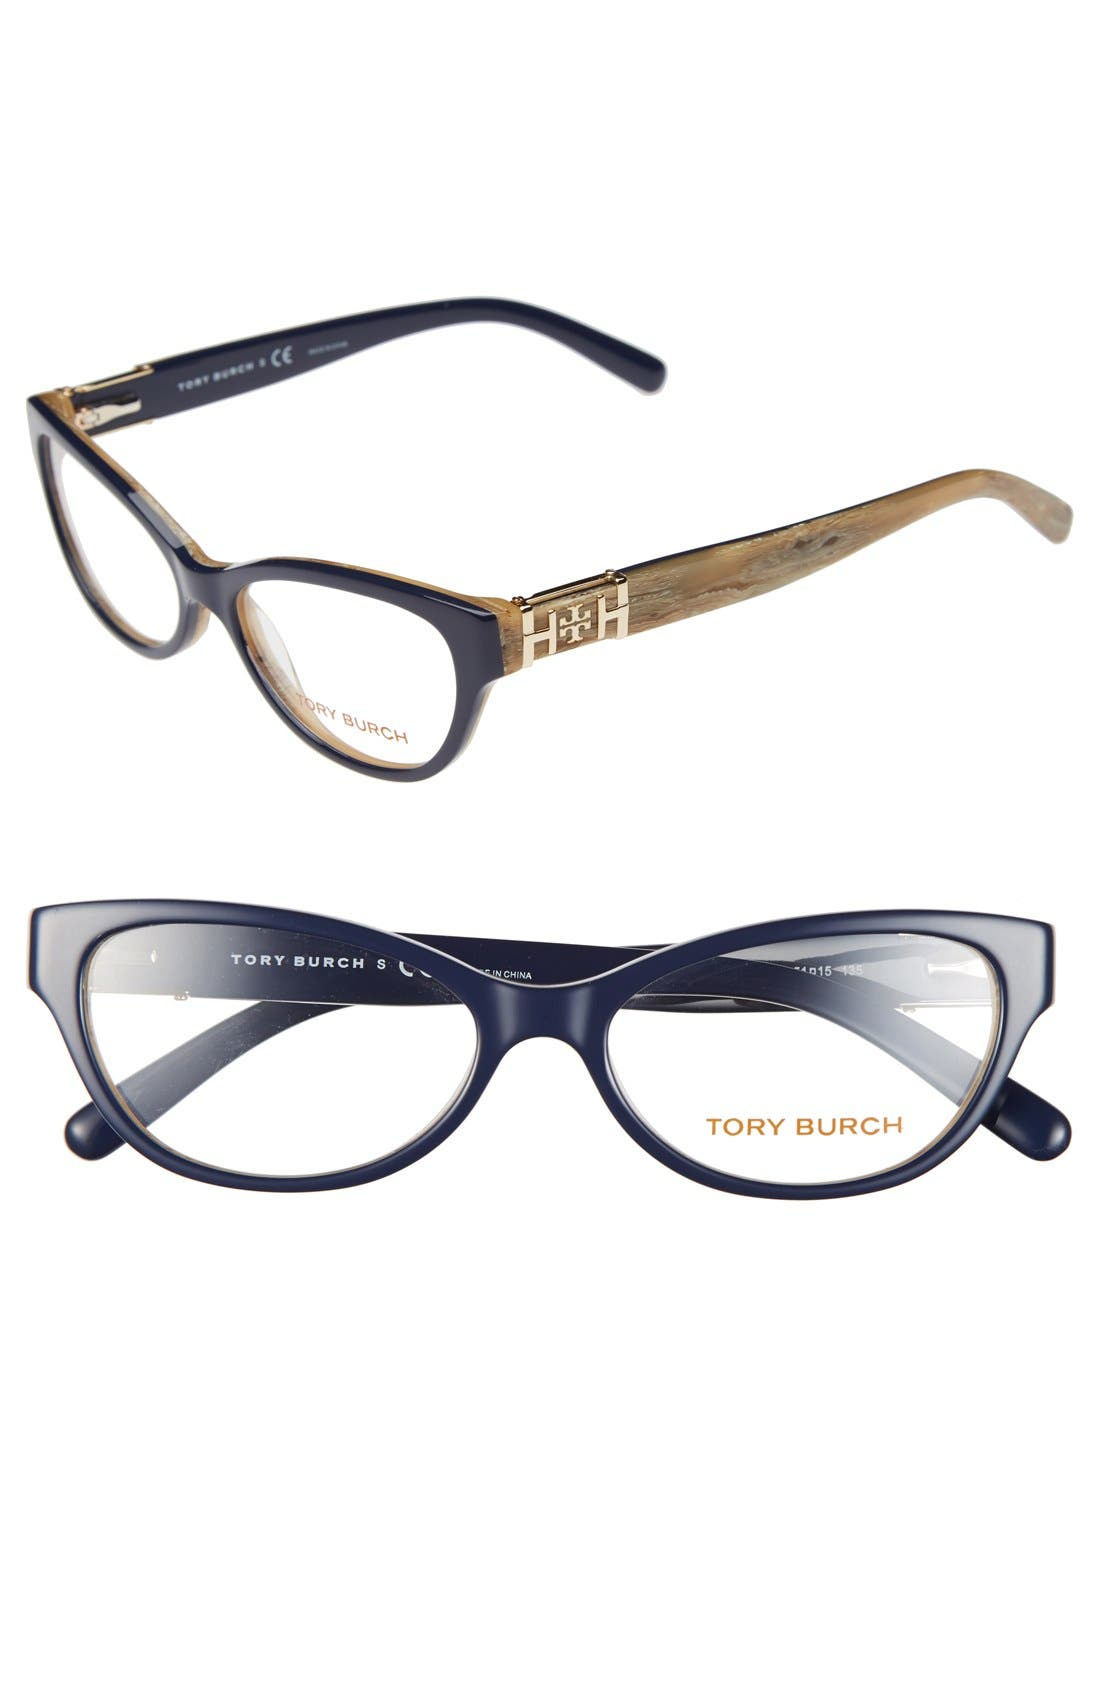 Main Image - Tory Burch 51mm Cat Eye Optical Glasses